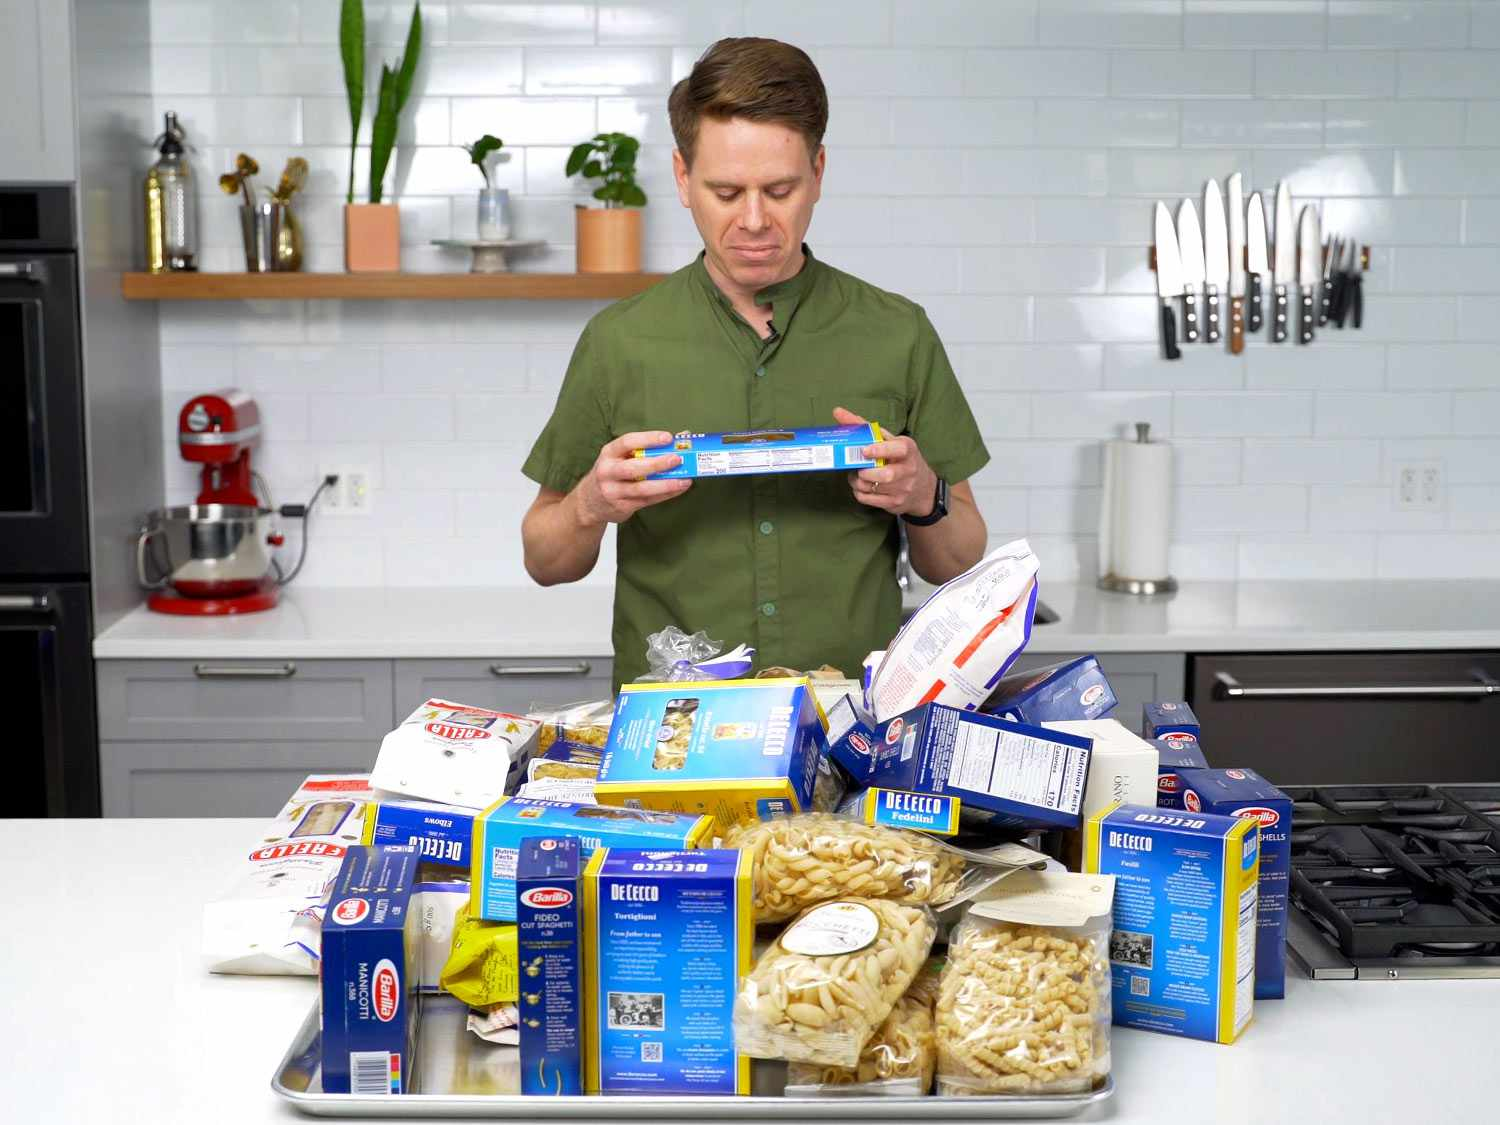 Sasha Marx standing in front of a pile of pasta products while frowning at a box of angel hair